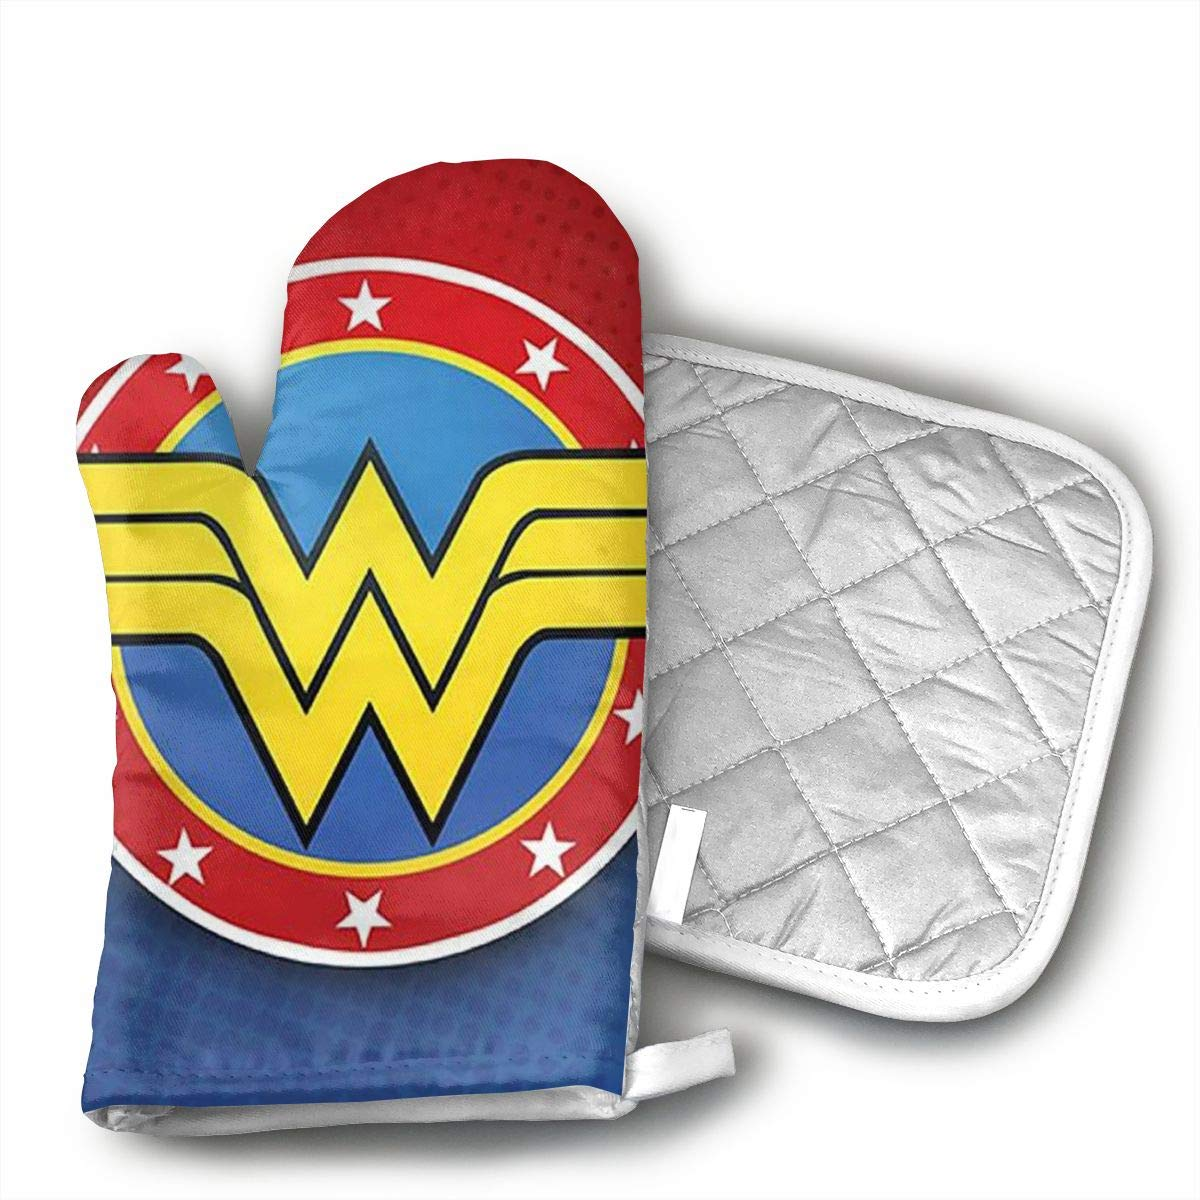 VFSFJKBG Wonder Woman Oven Gloves, High Heat Resistance, Machine Washable High Heat Resistant Polyester Filling for Thanks Giving, Christmas